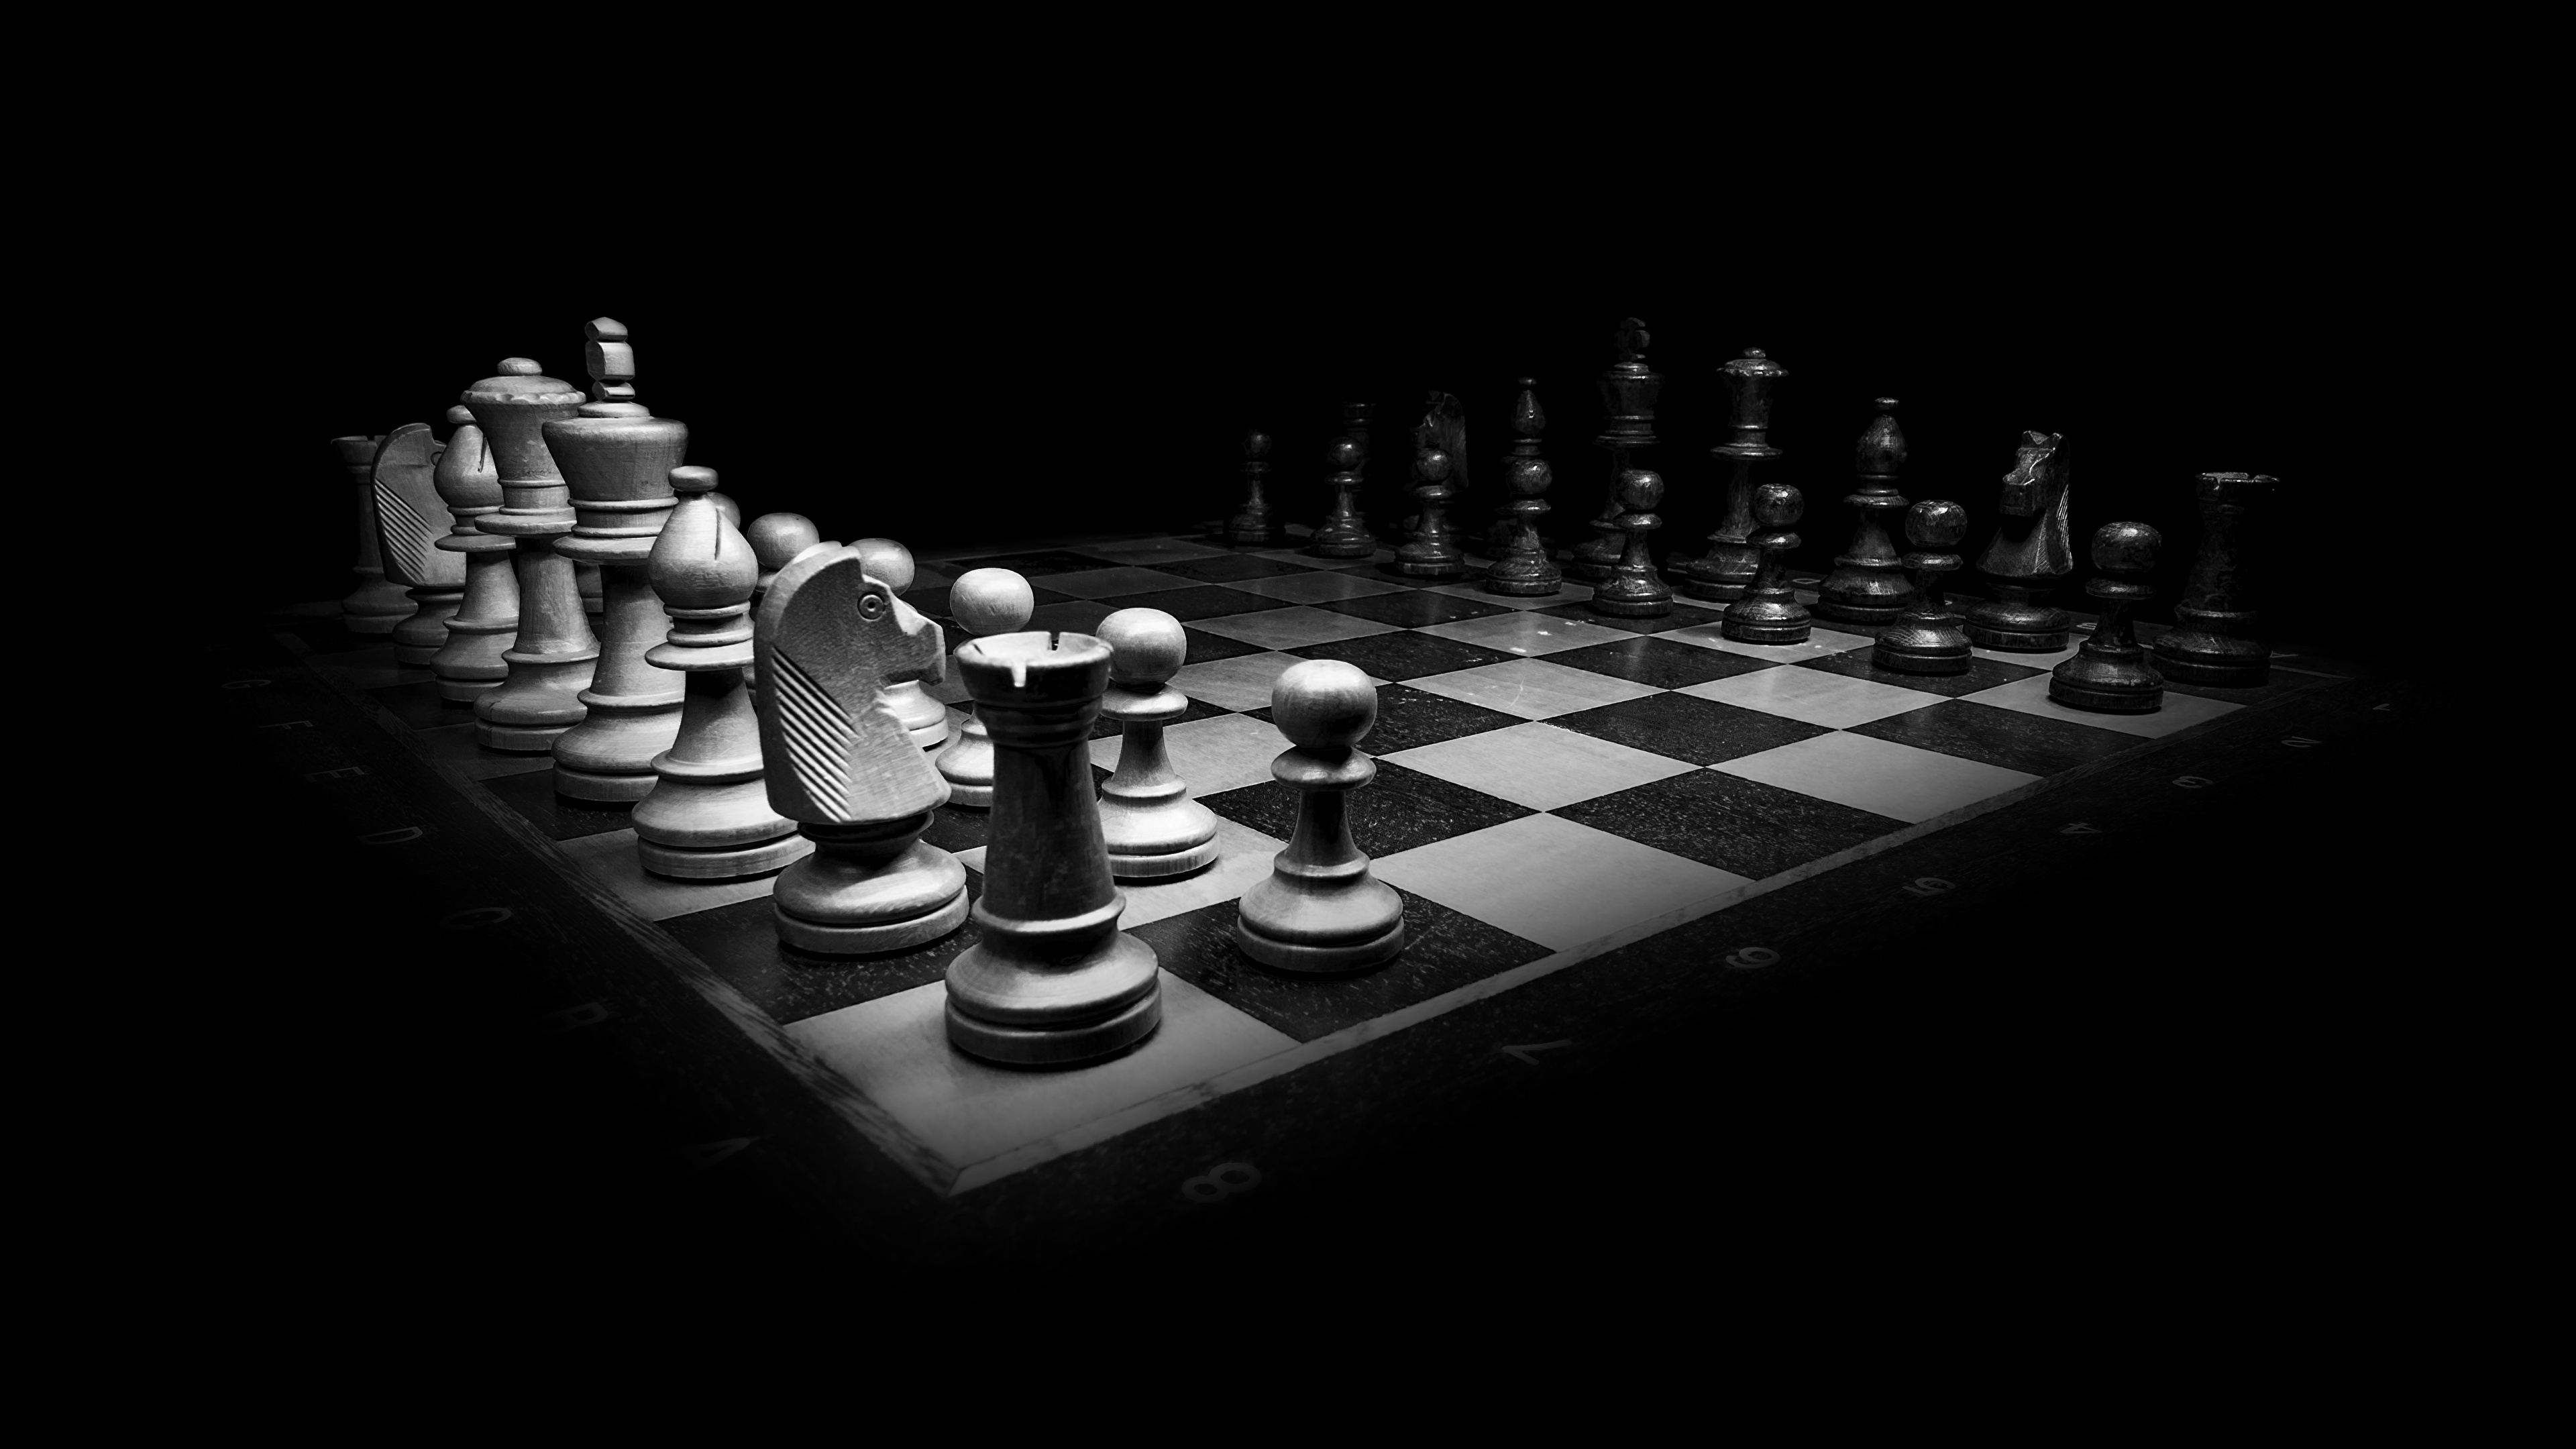 Photo Chess Games Black And White Black Background 3840x2160